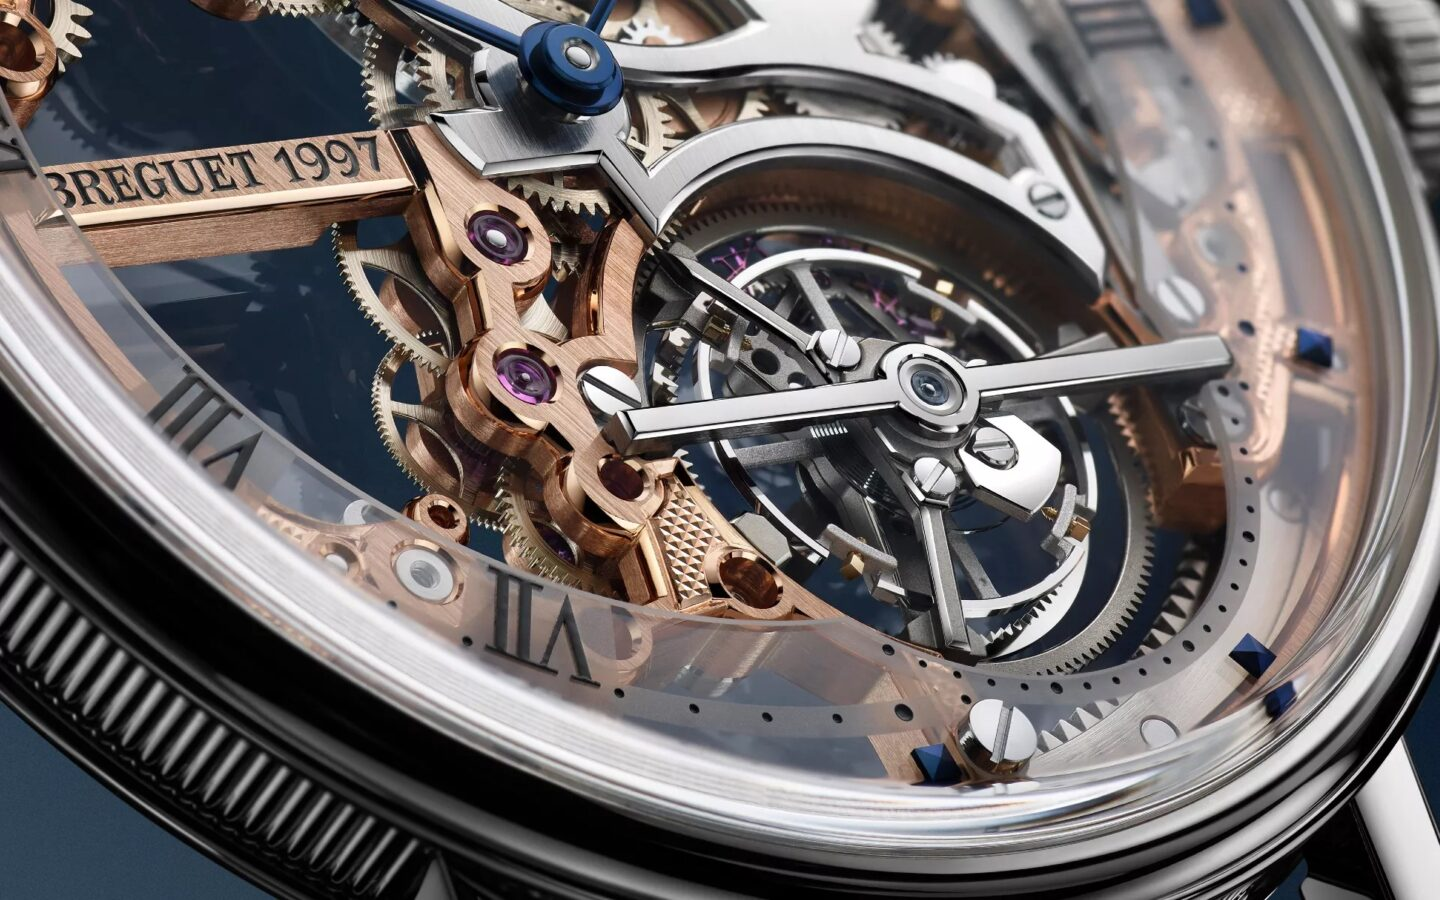 Immersion Breguet